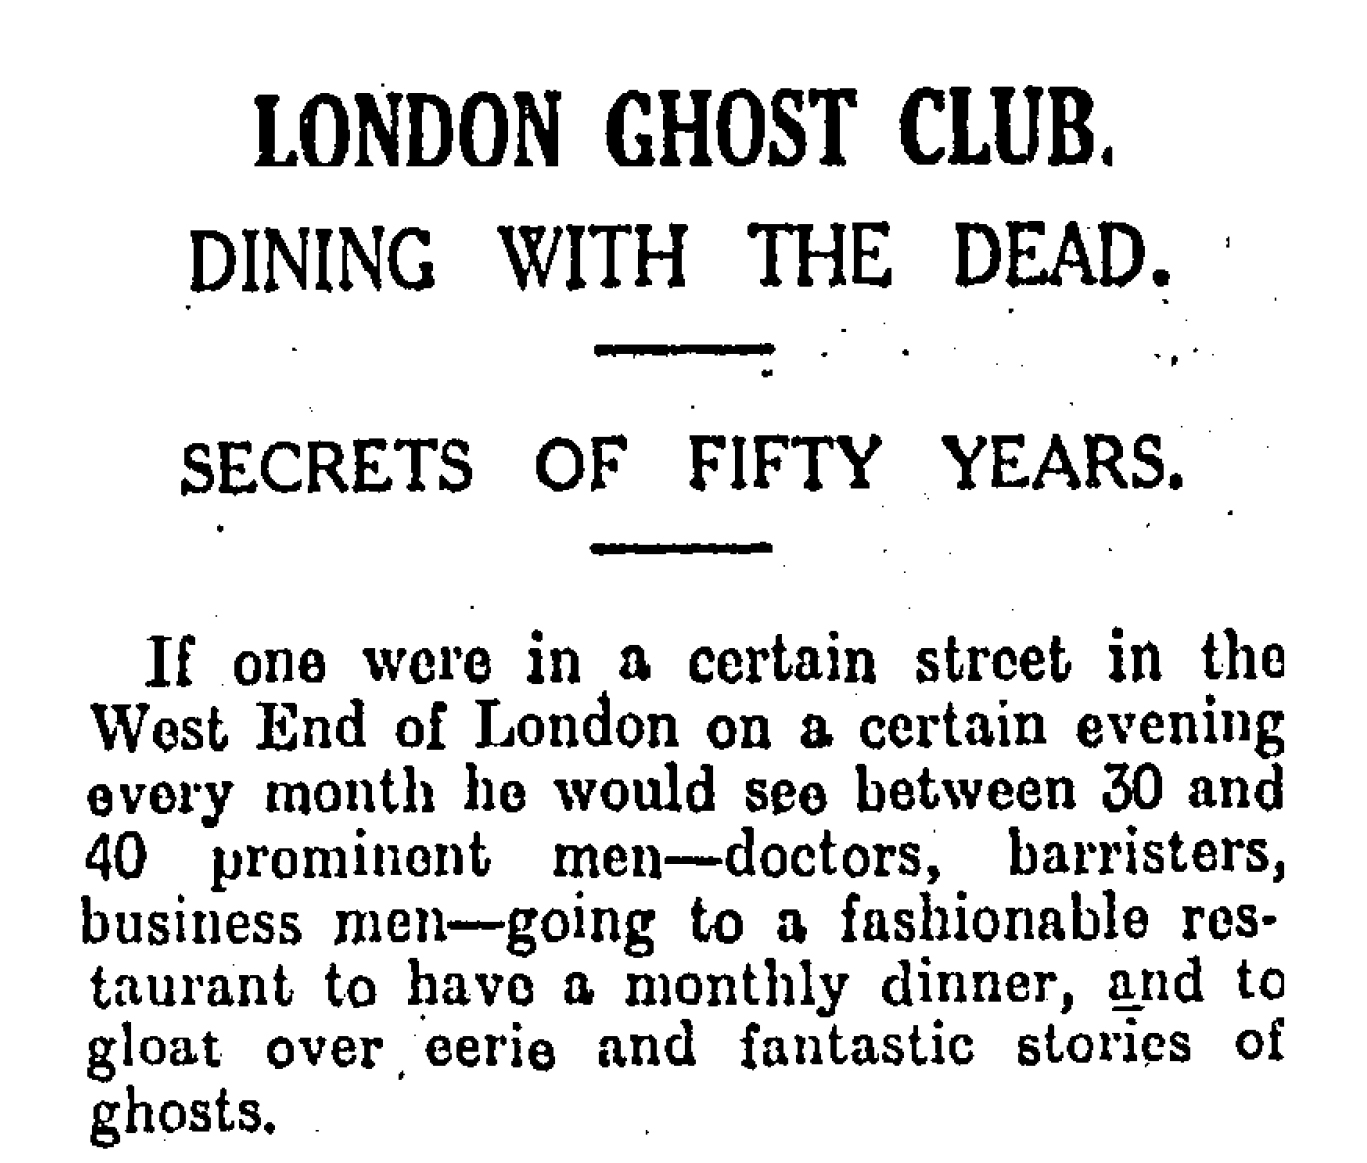 News of the London Ghost Club, reported in the New Zealand Herald, May 23, 1931.